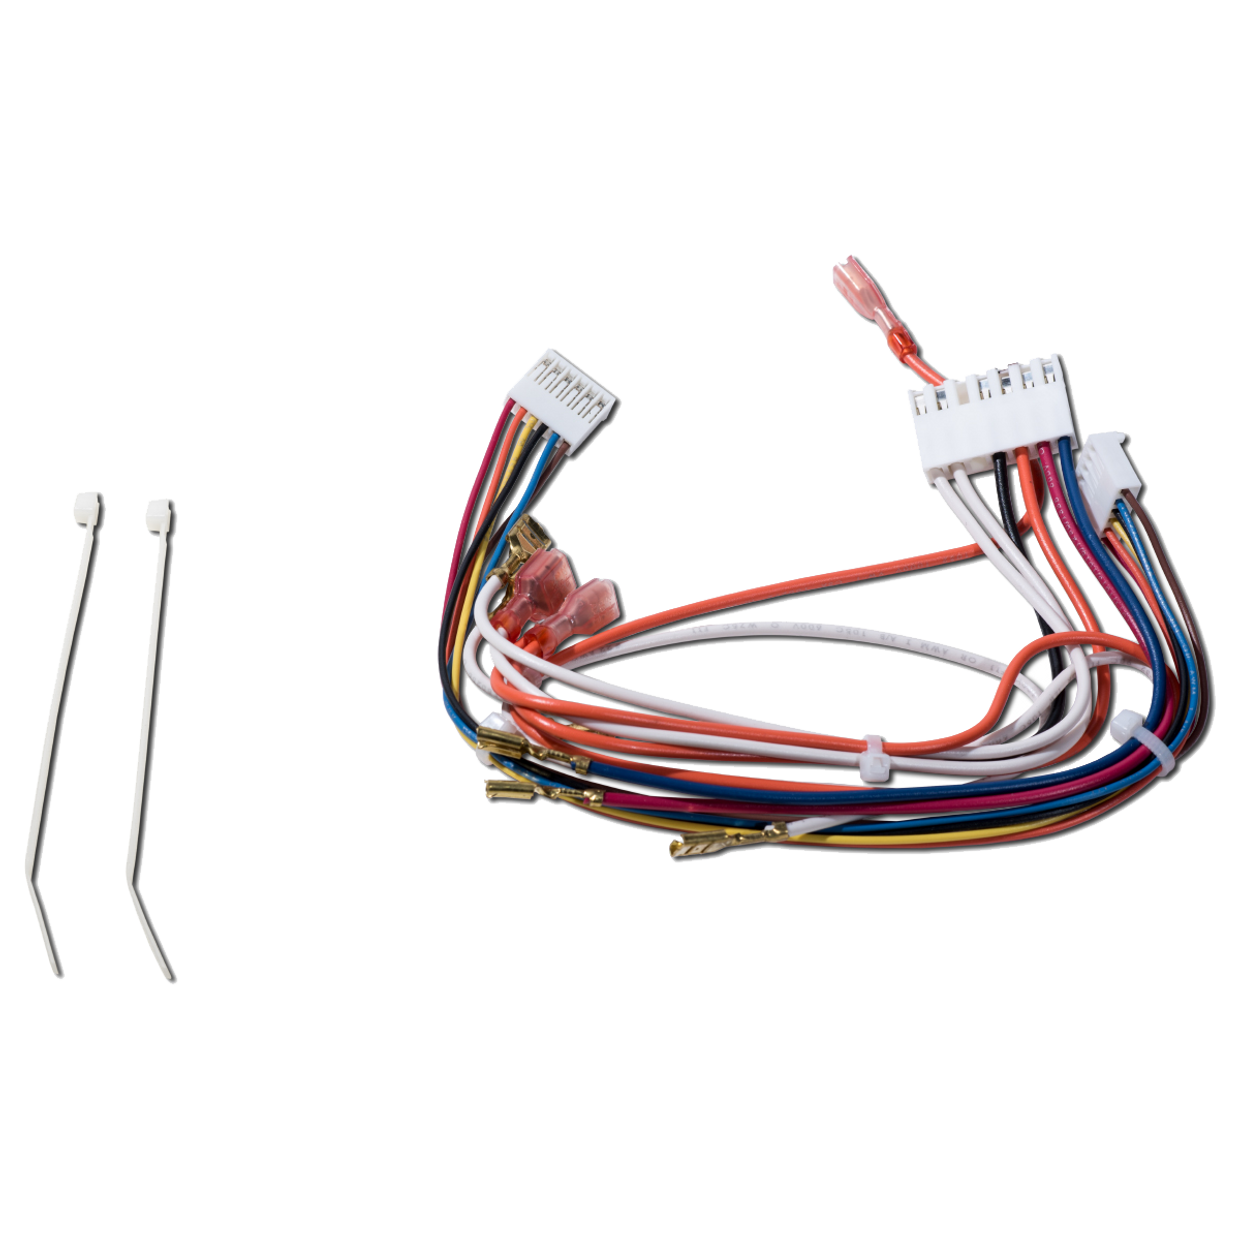 041A7948- Wire Harness Kit, Dual Light